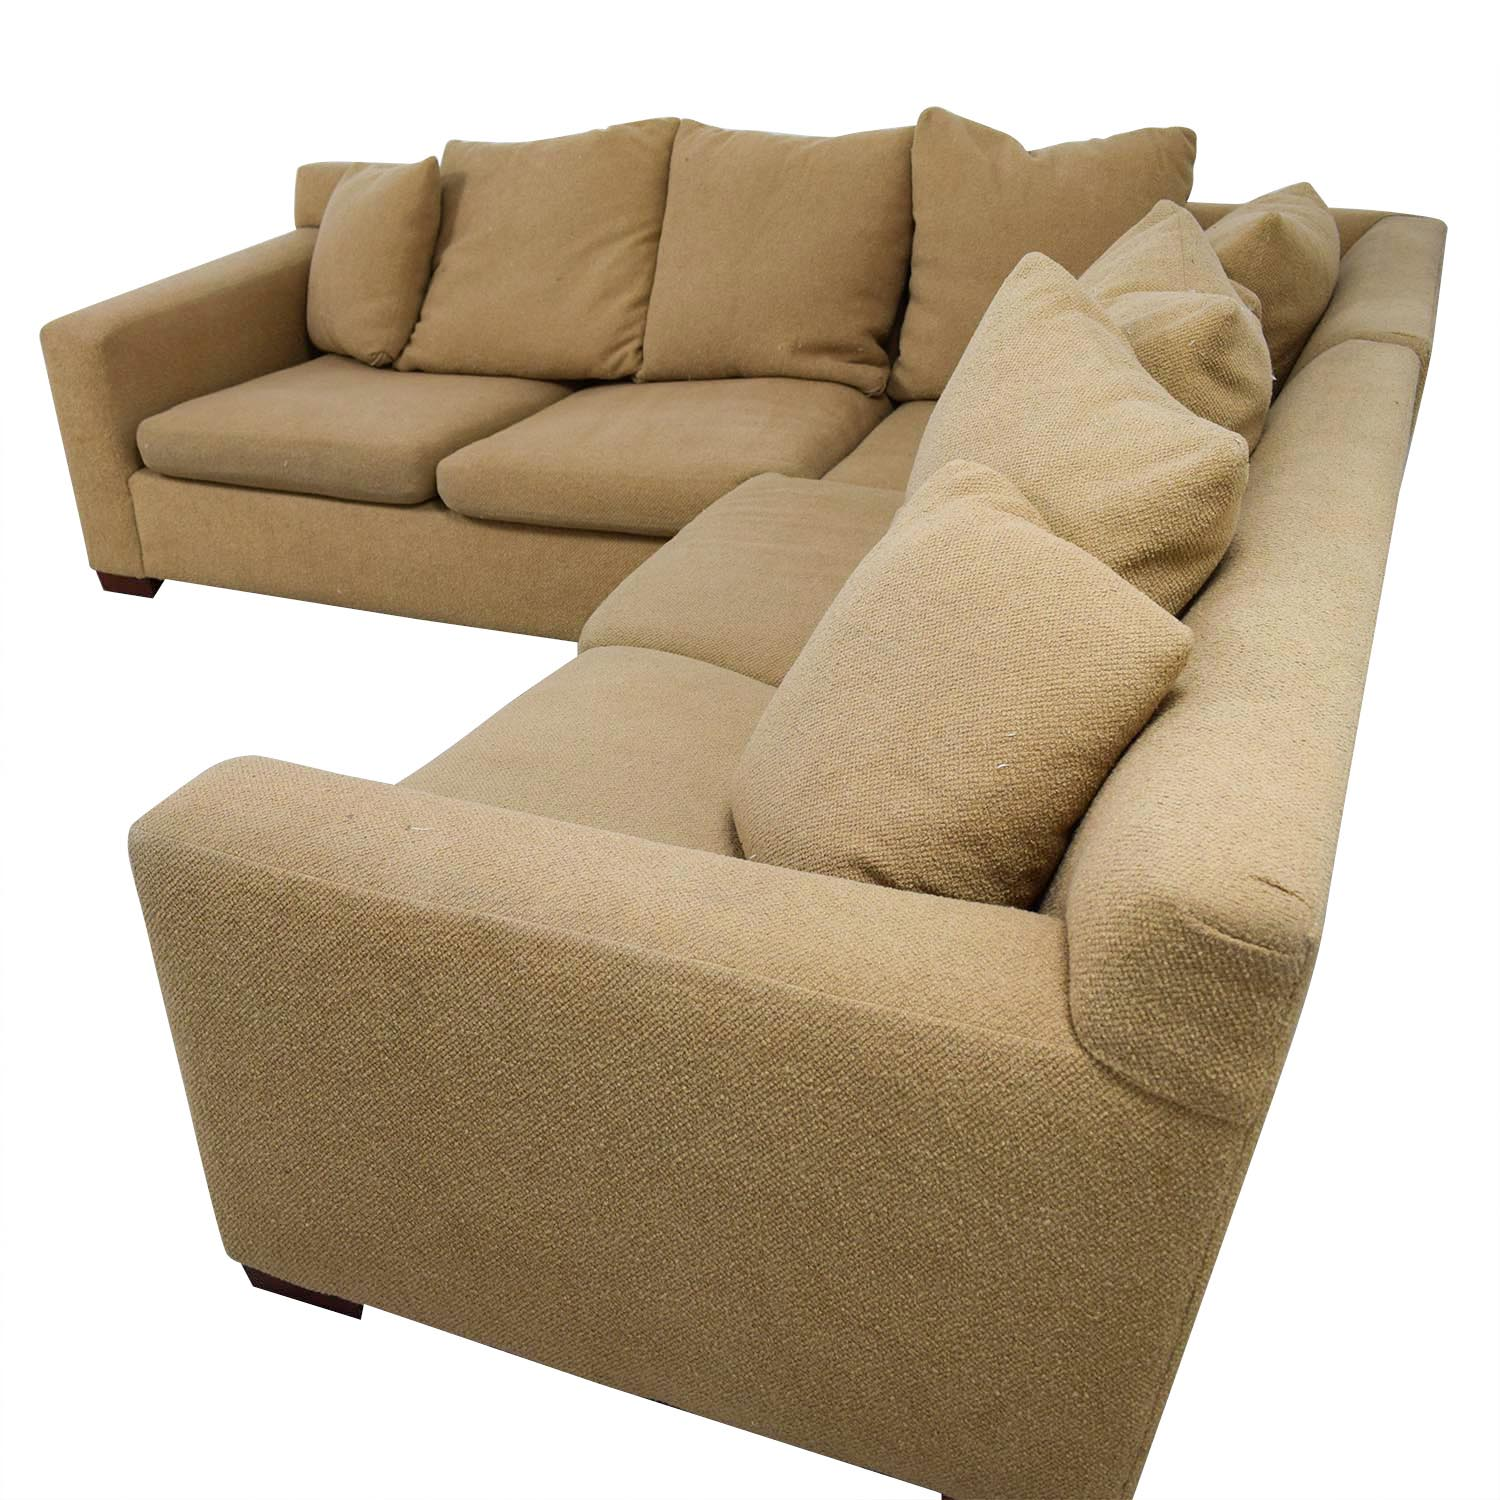 feather filled sofas second hand sofa set costco 89 off ralph lauren down tan